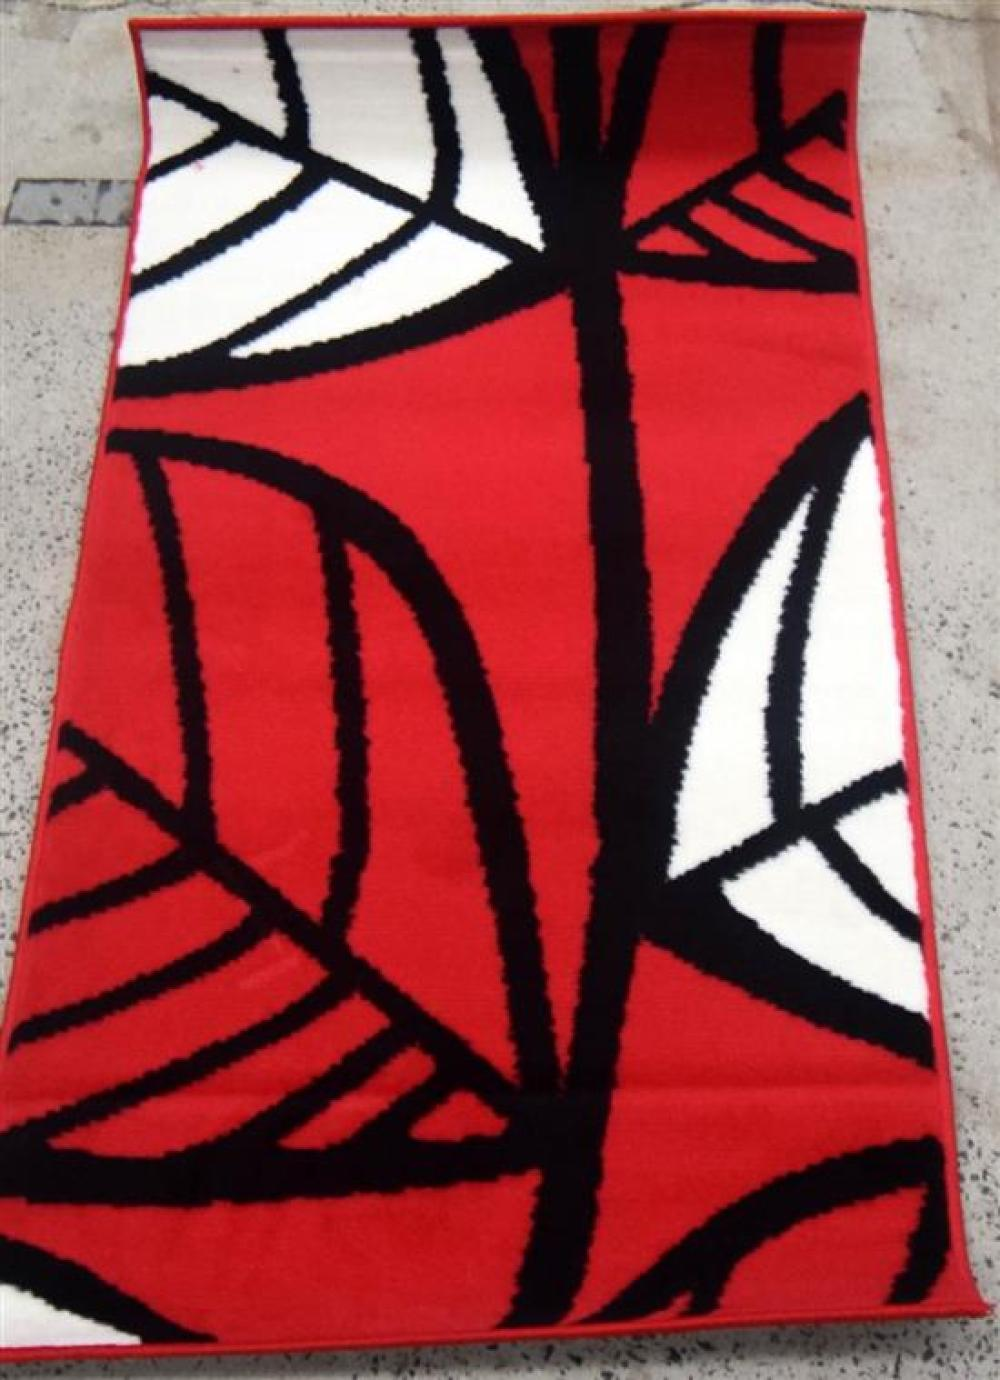 Ten Balta Synthetic Rugs in Red & White with a Leaf Pattern